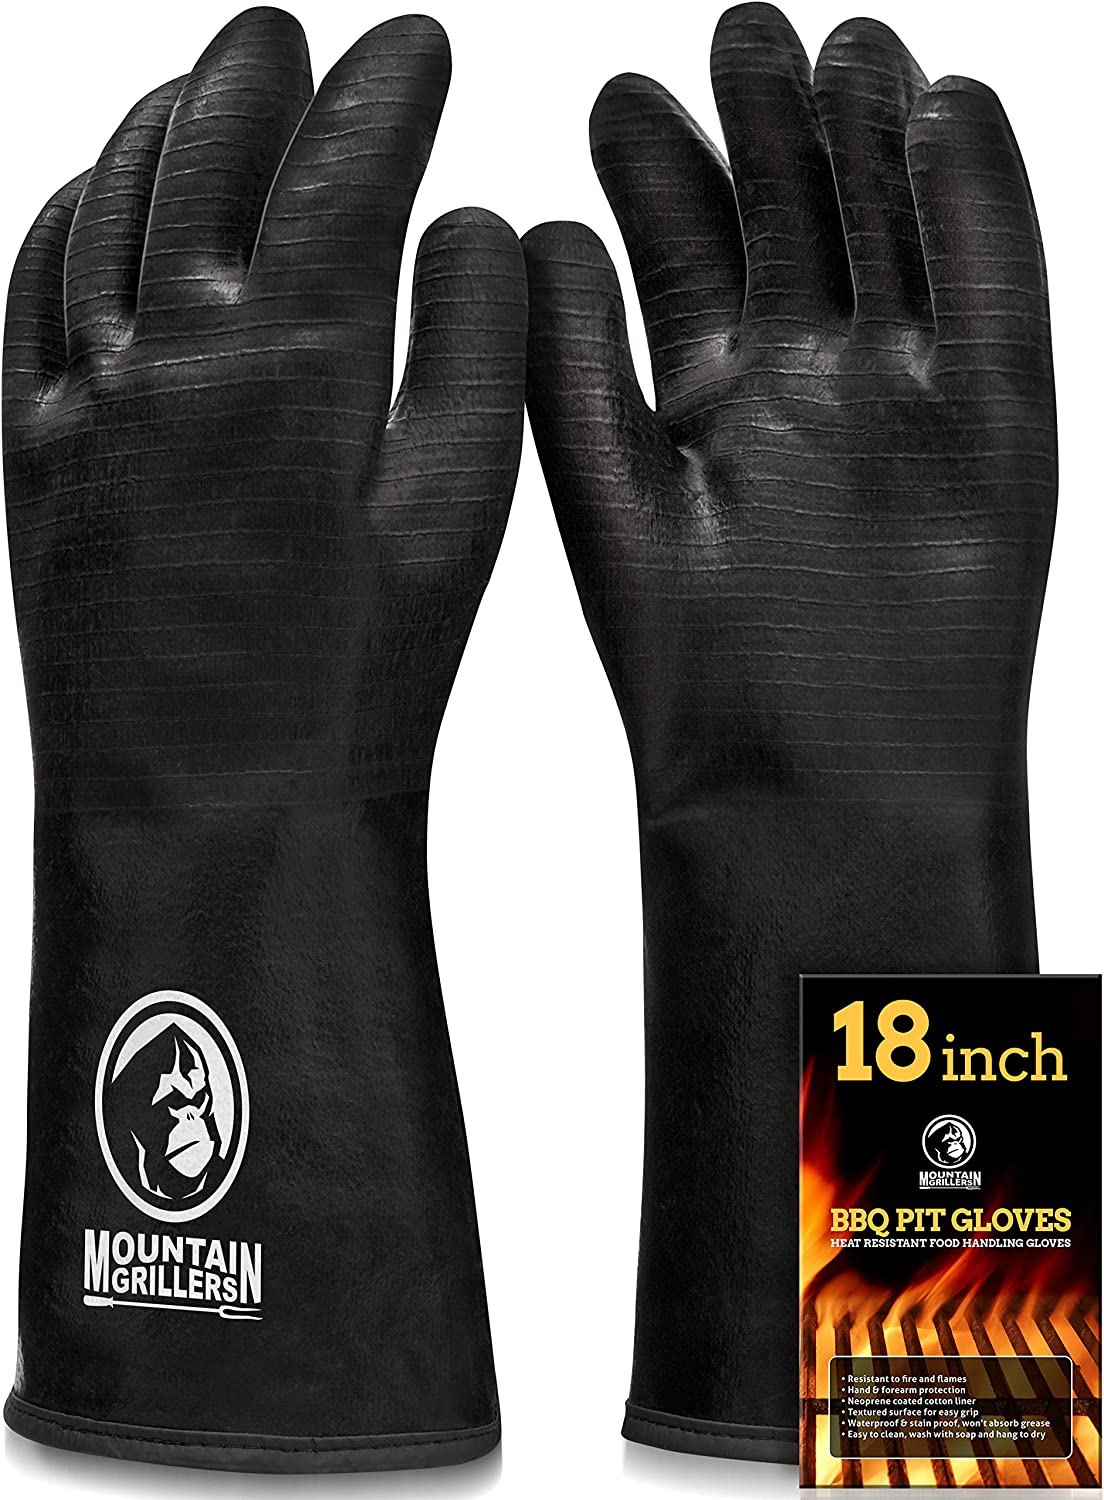 Extreme Heat Resistant Gloves for Grill BBQ - High Temperature Fire Pit Grill Gloves - Barbecue Cooking, Smoker, Oven, Fryer, Grilling - Waterproof, Fireproof, Oil Resistant - Neoprene Coating (18in)